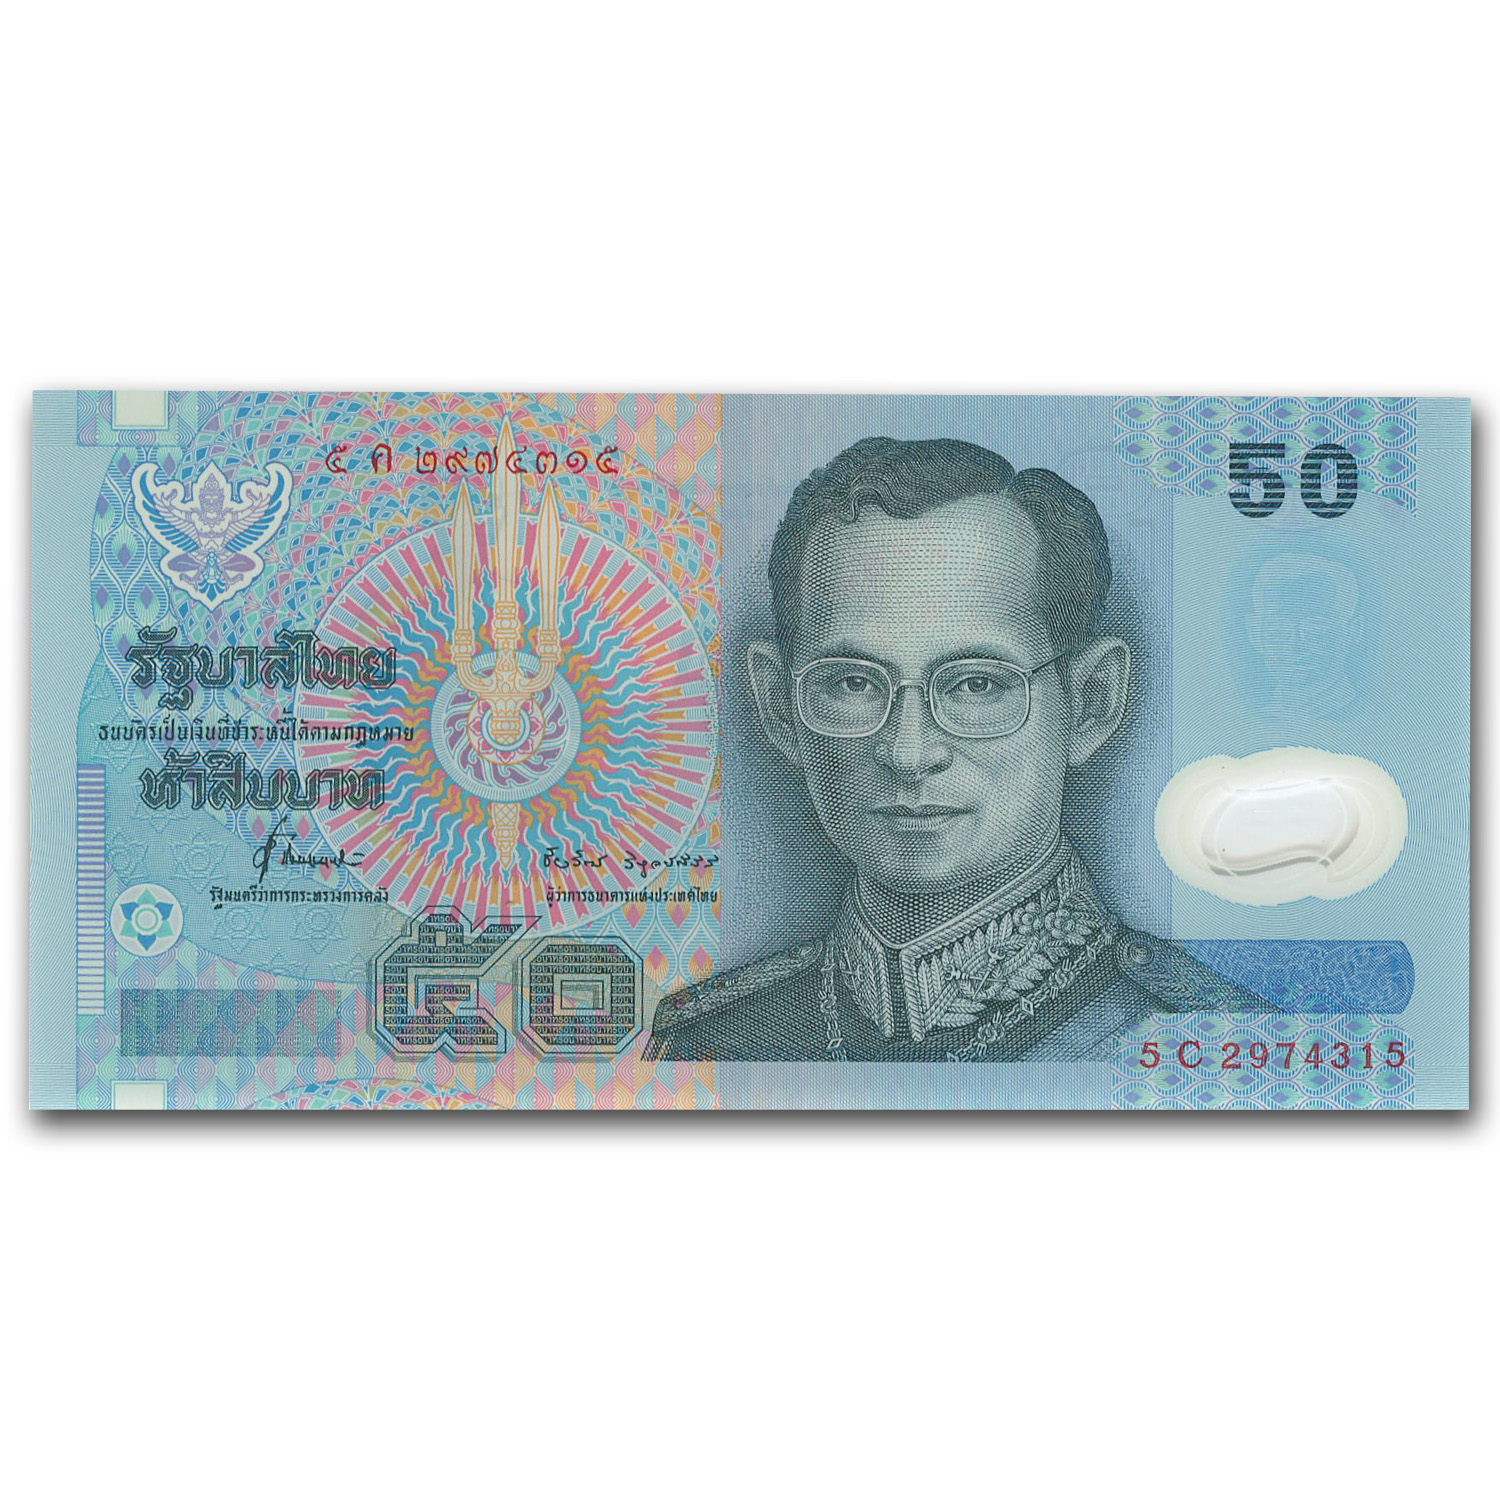 1997 Thailand 50 Baht Polymer Unc P#102